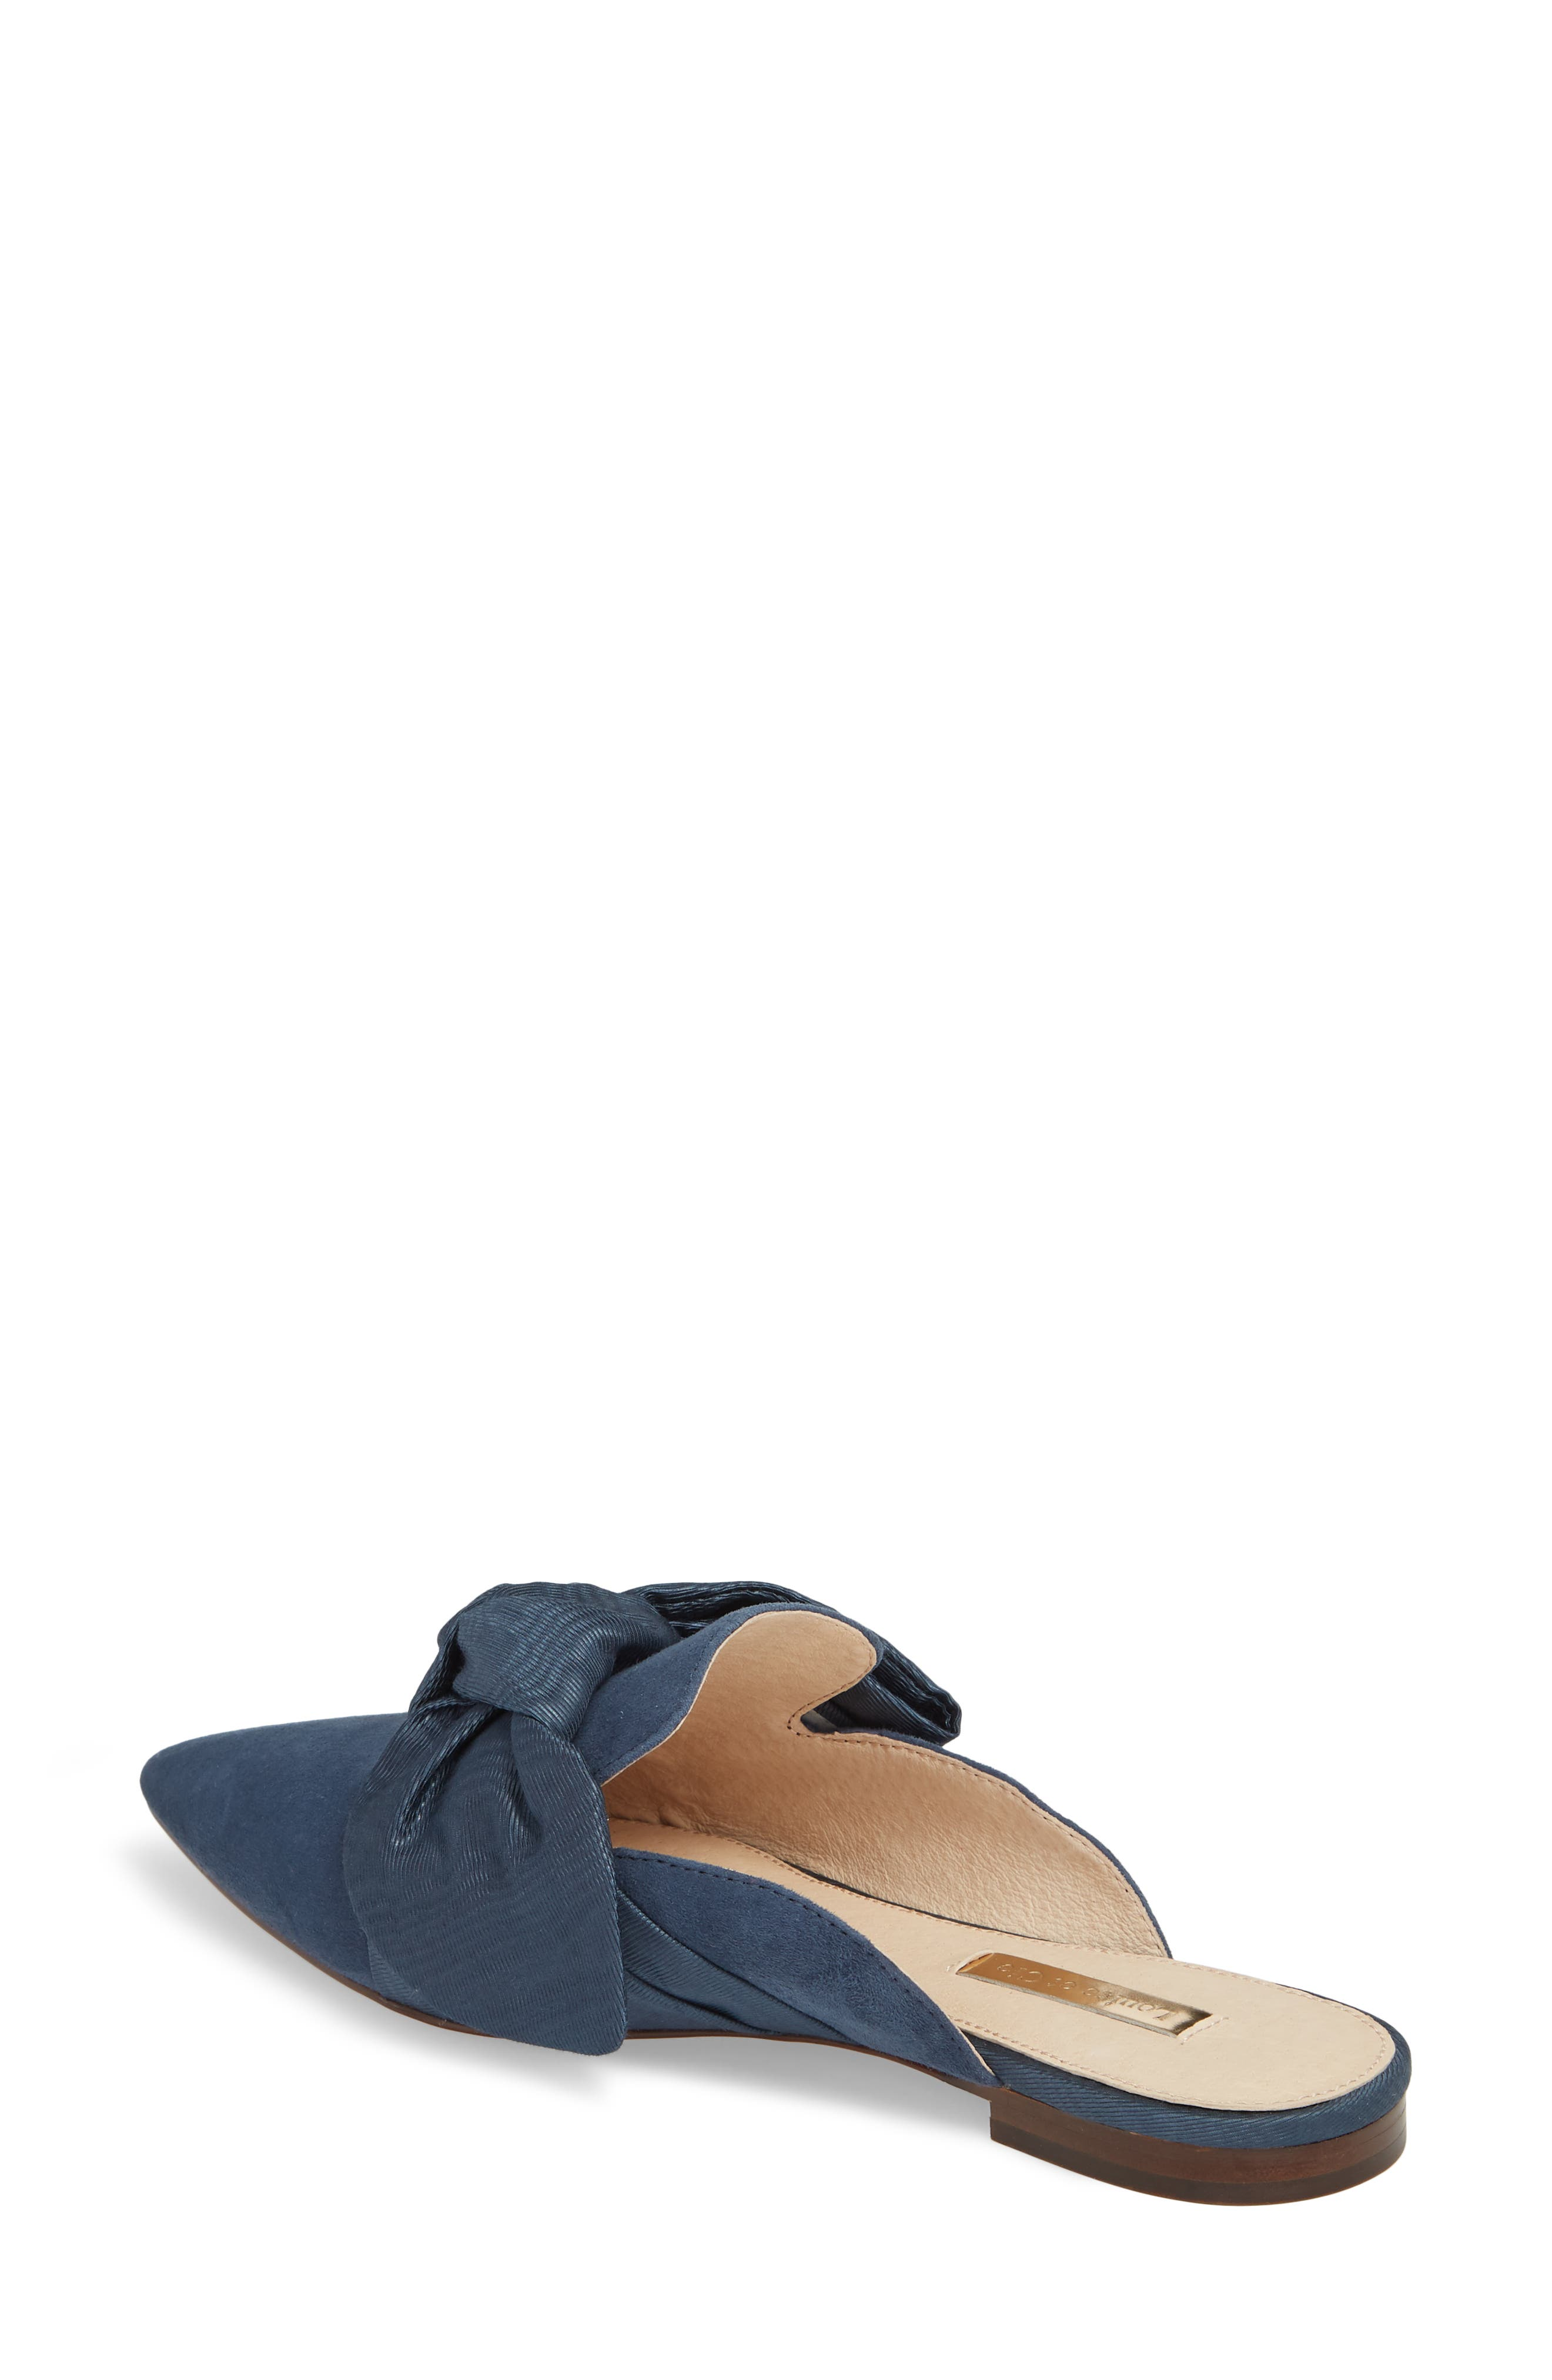 Cela Bow Mule,                             Alternate thumbnail 2, color,                             RHAPSODY SUEDE